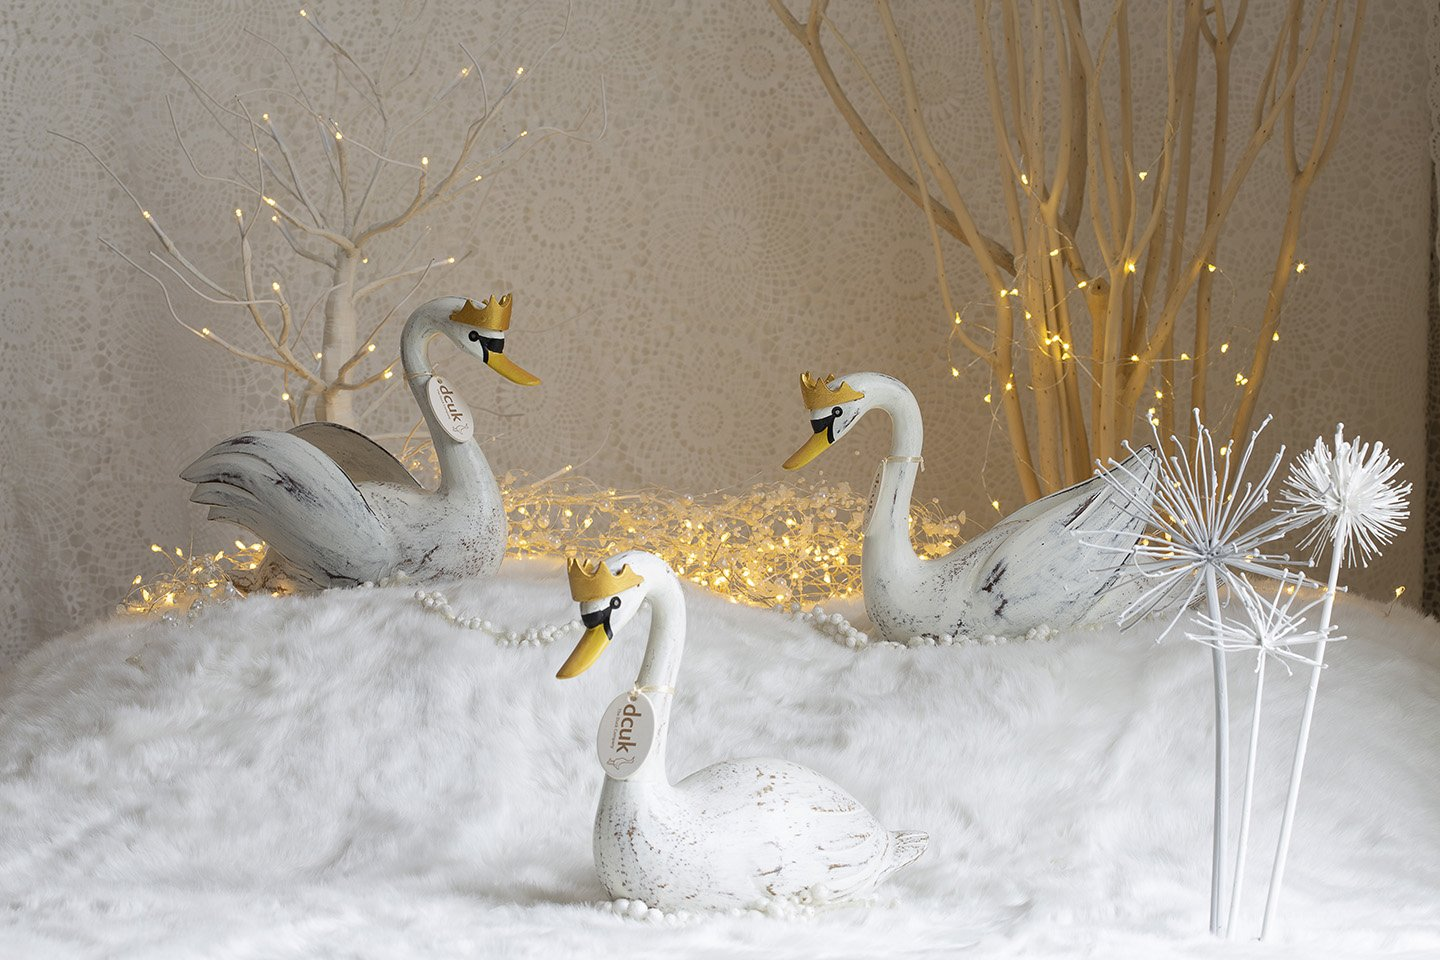 Three DCUK Swans with crowns on